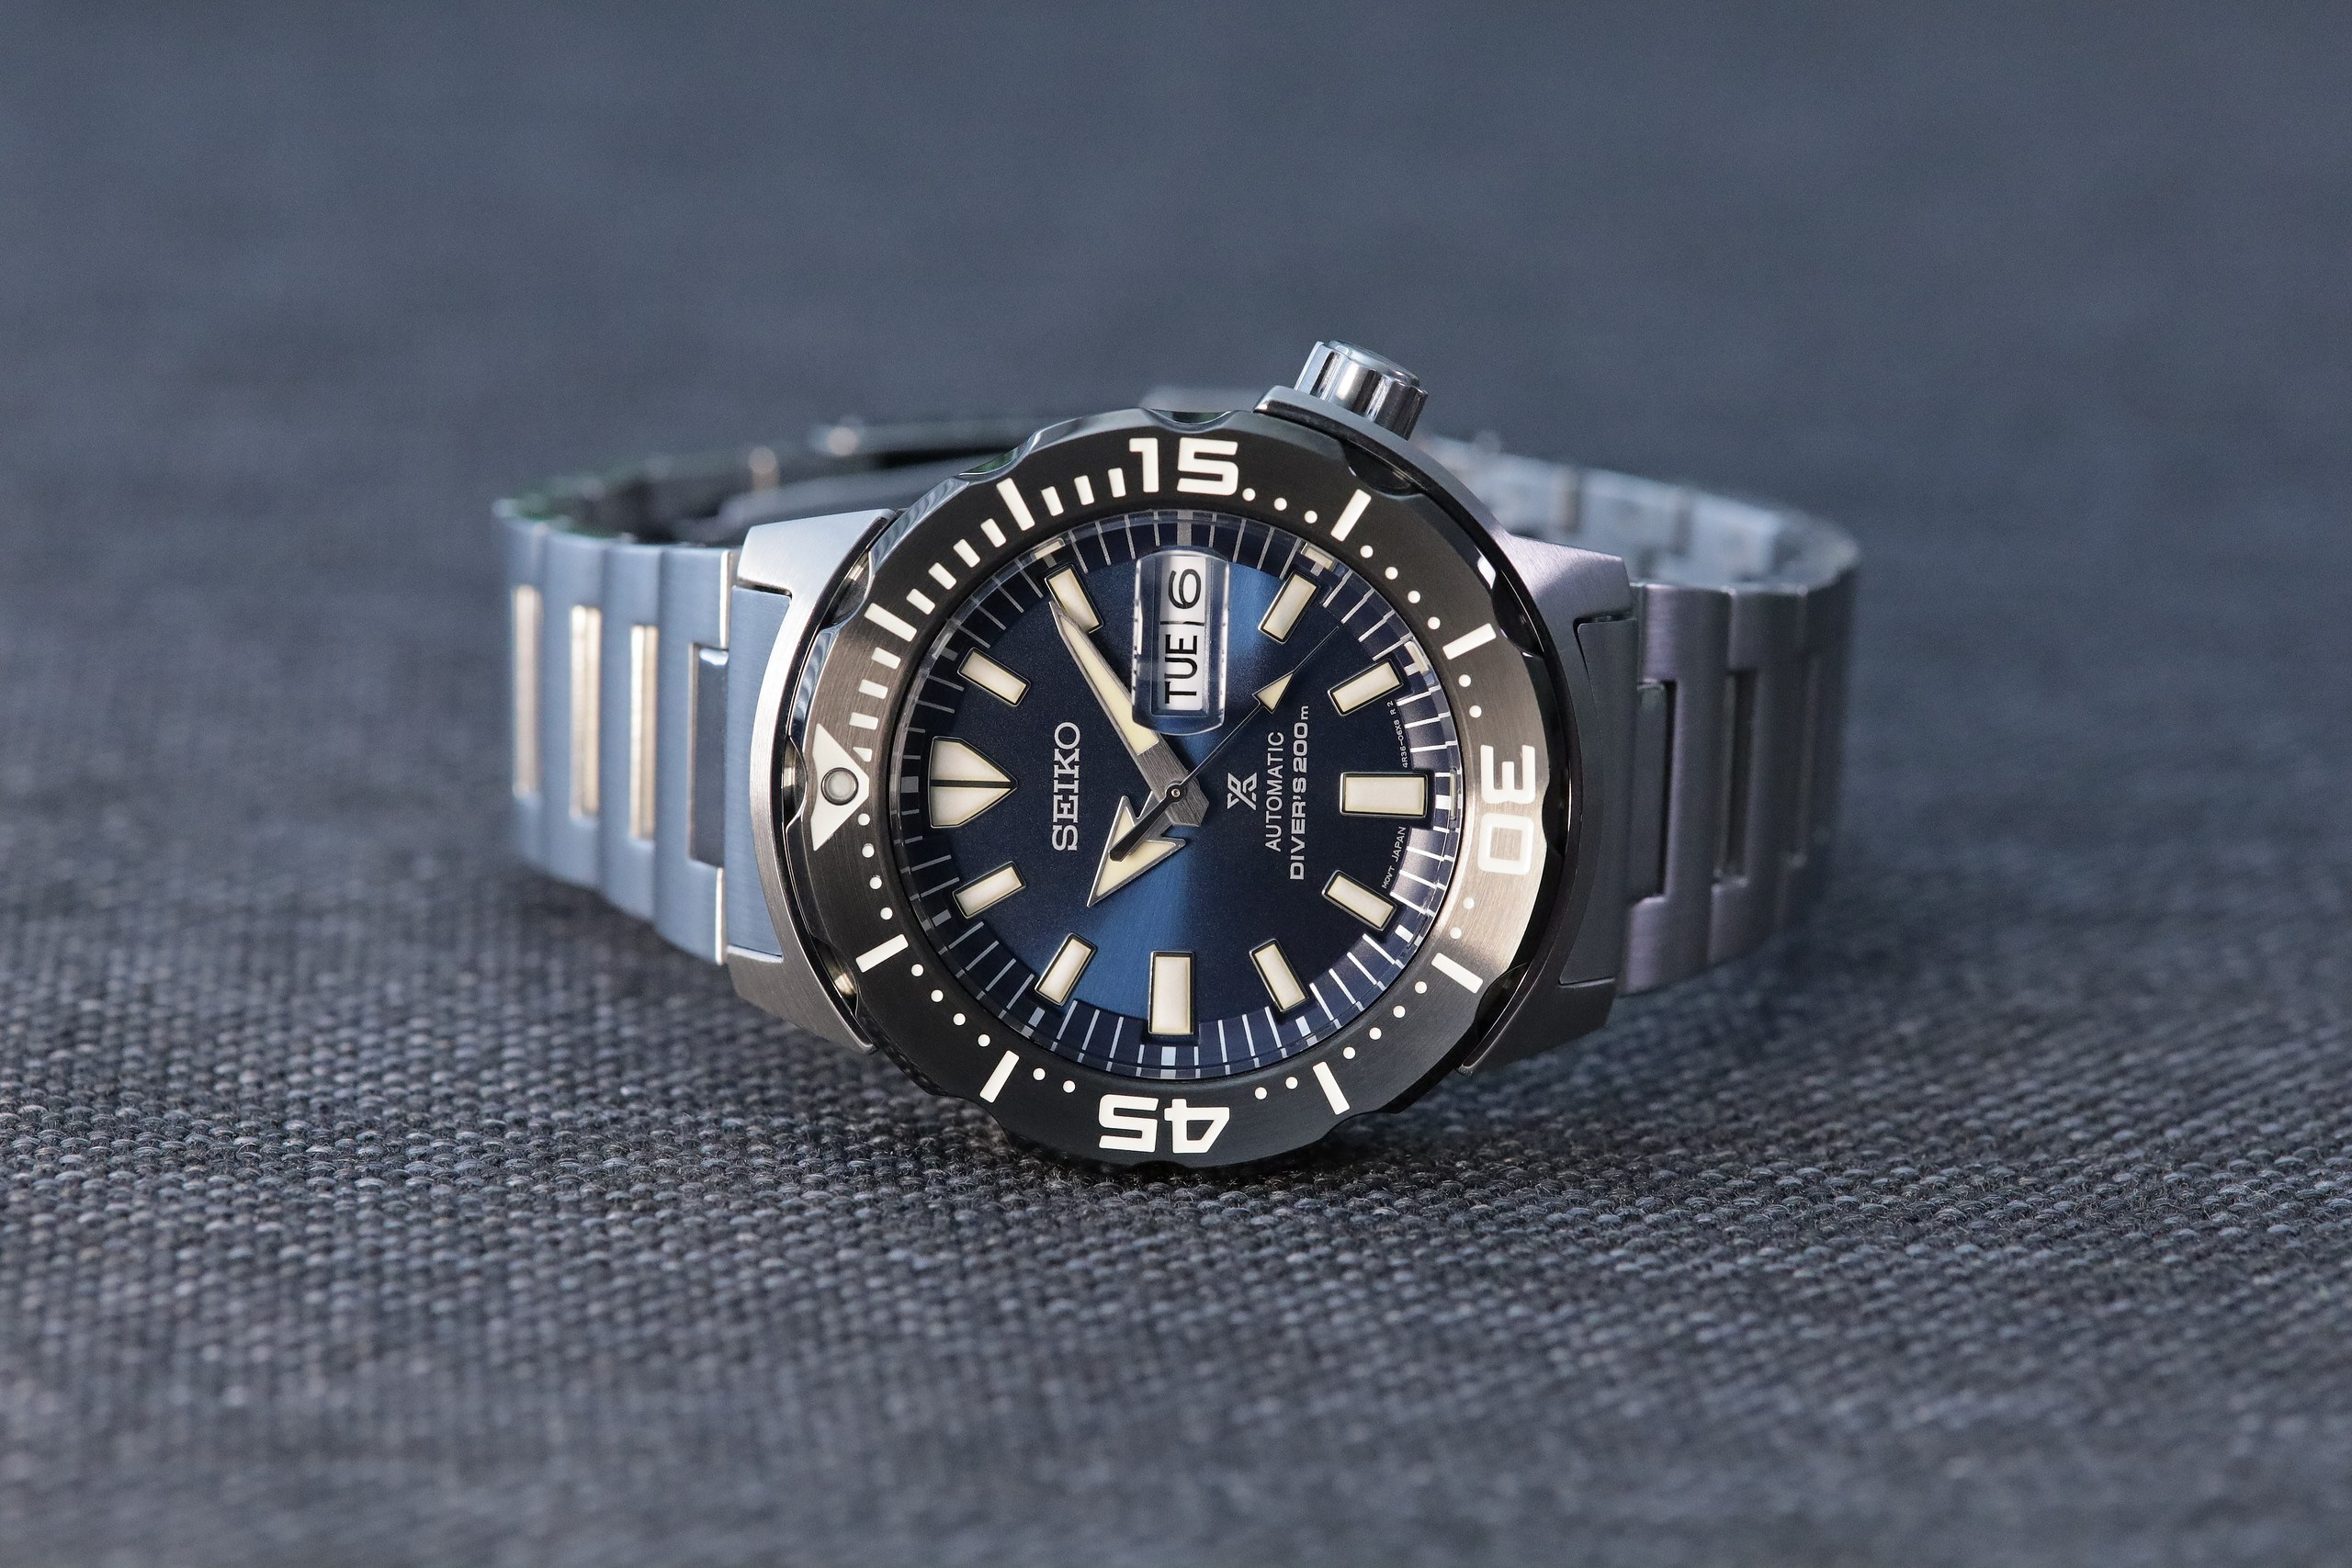 Seiko-Prospex-SRPD25-Monster-Automatic-Diver-front-side.jpg